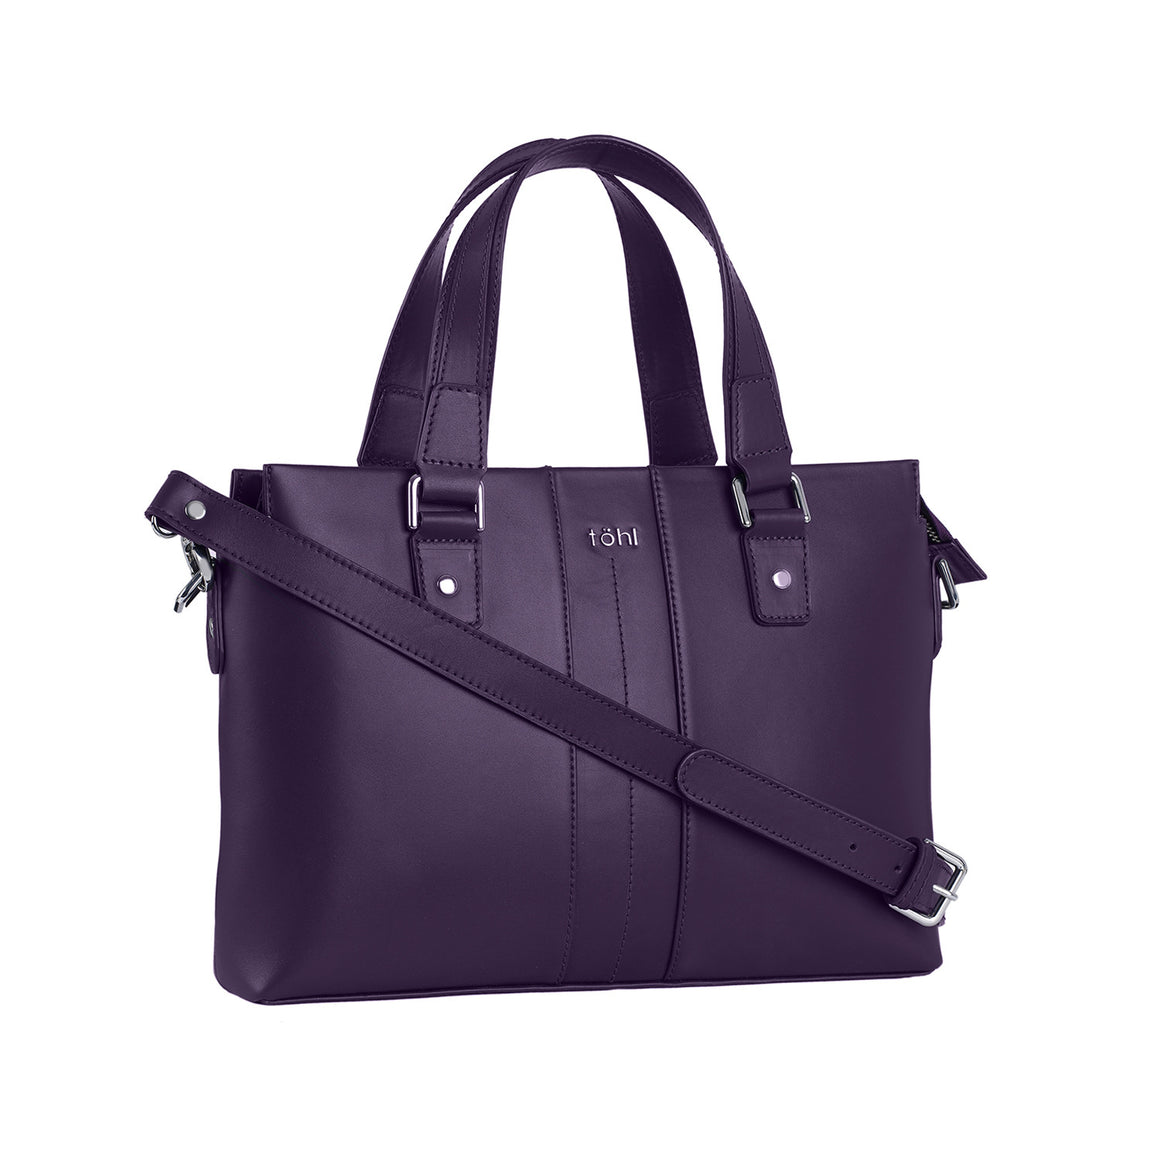 HH 0011 - TOHL WORTH WOMEN'S VALISE - AUBERGINE